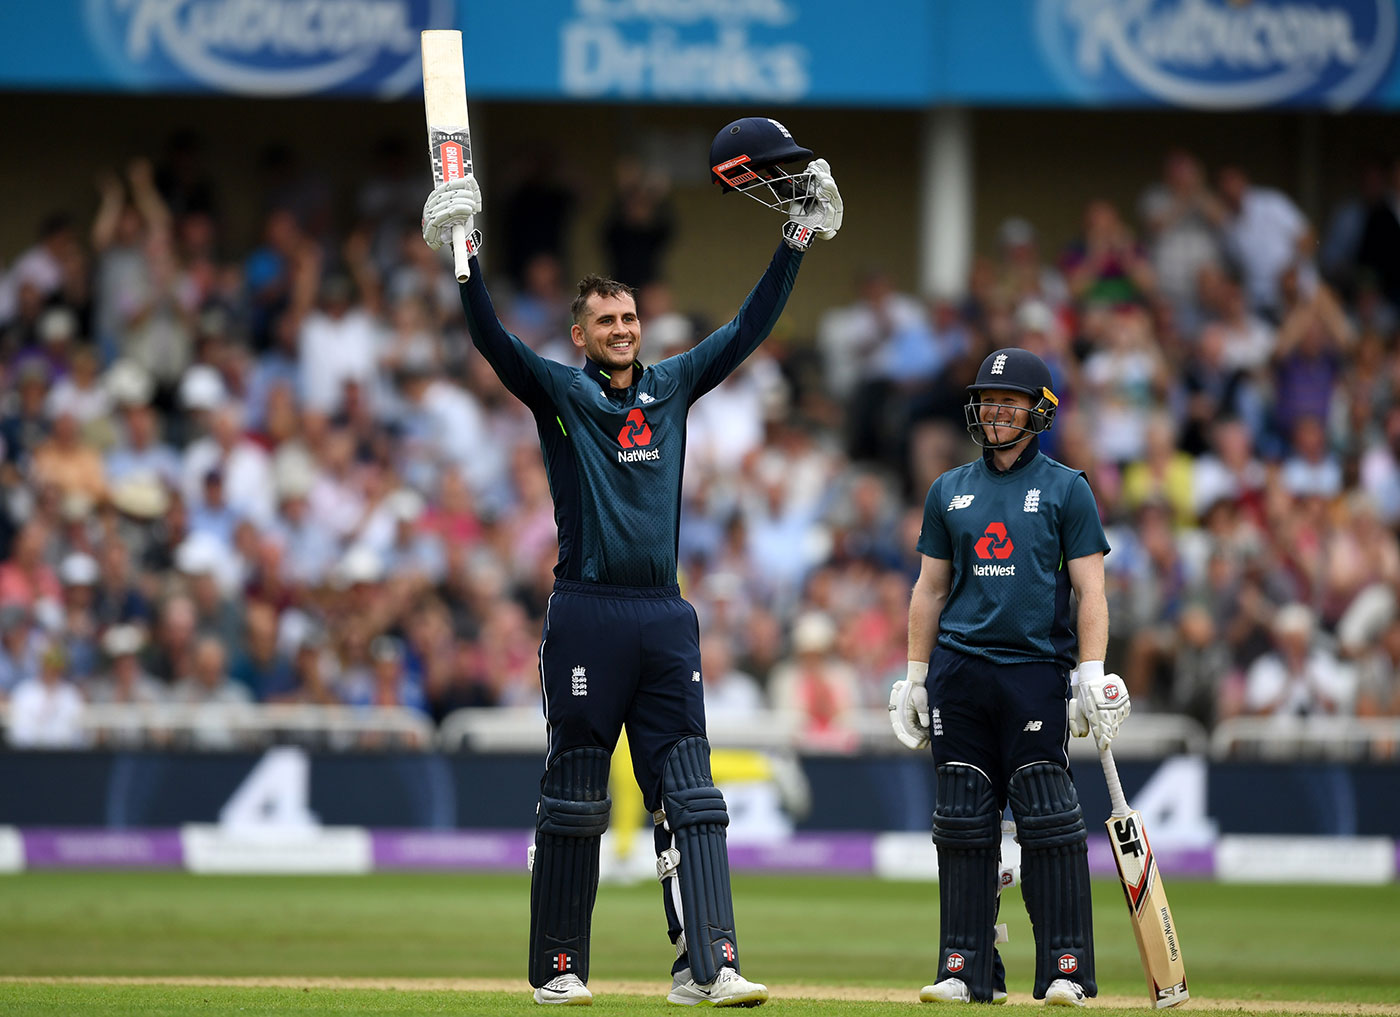 England set record for highest ever ODI team score